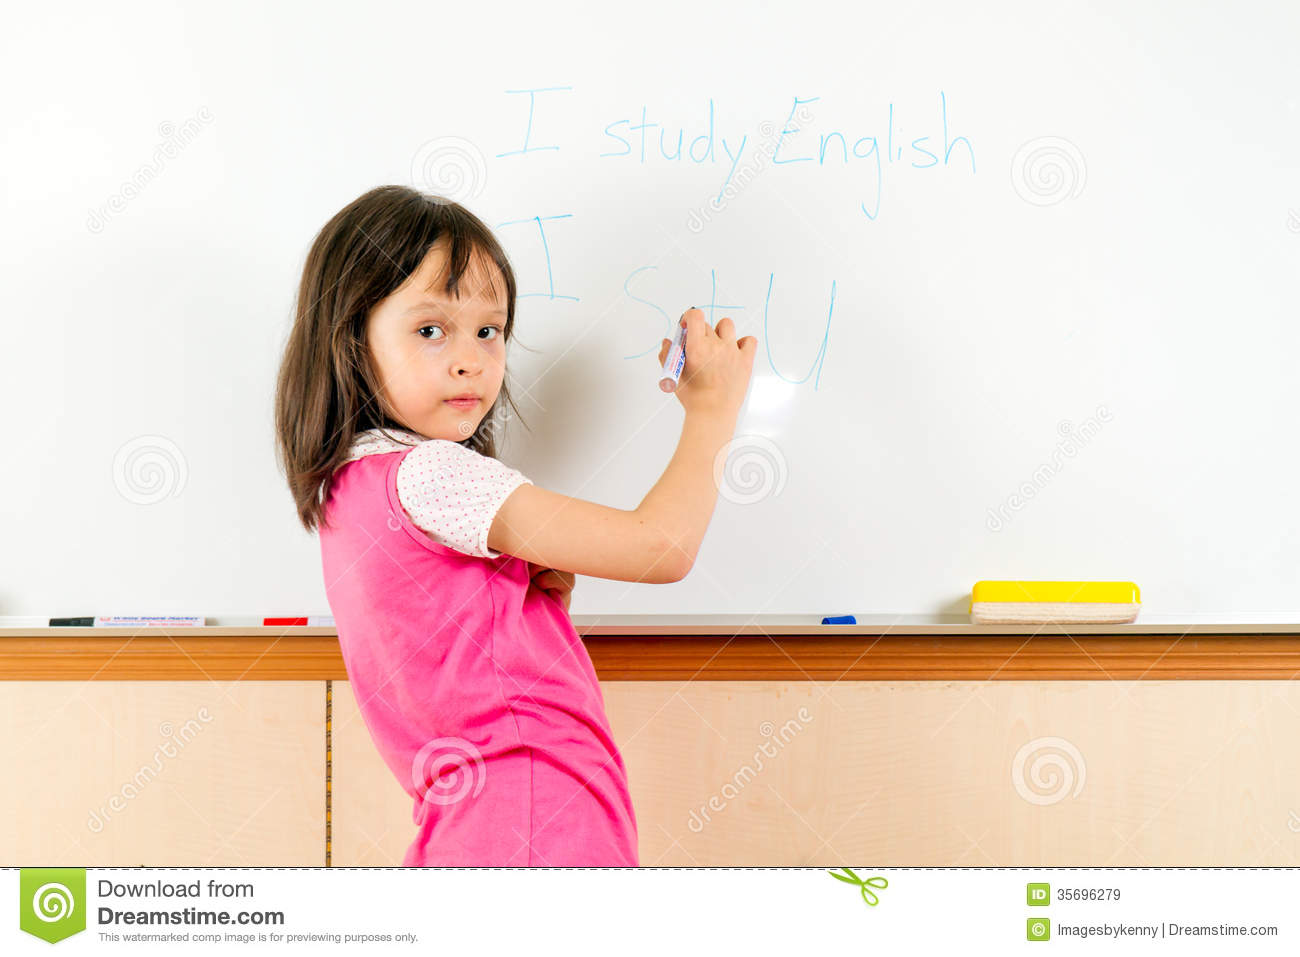 Guidance Techniques For Young Children Age 2-6 Essay Sample